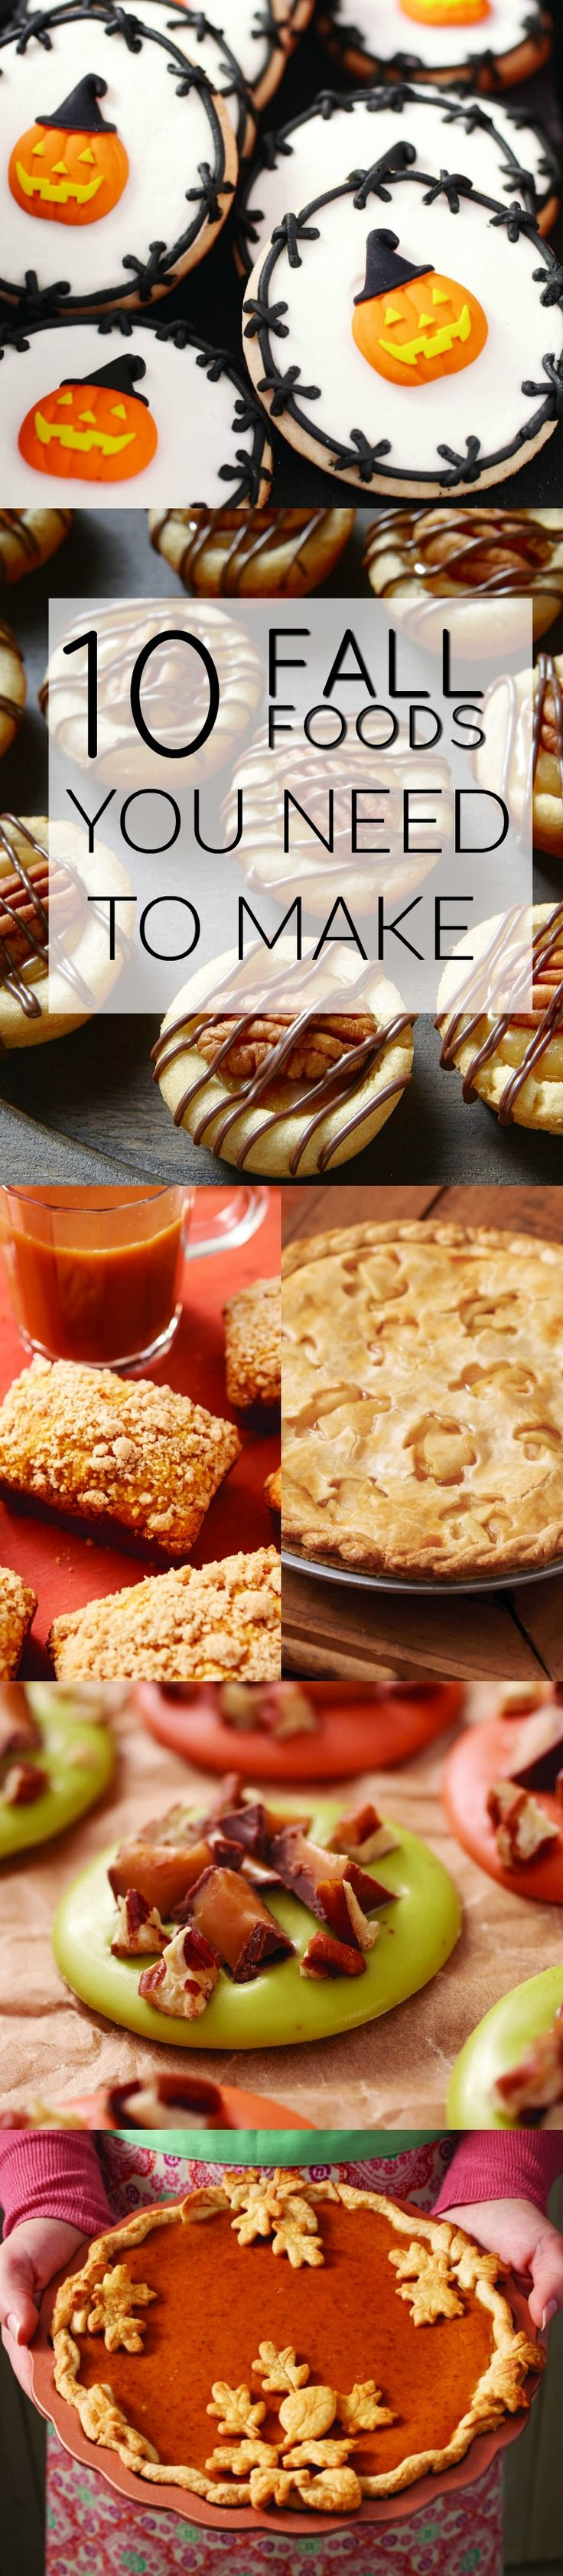 Fall crafts for adults to make - Find Your New Favorite Fall Food With Recipes And Ideas Galore Looking For A Delicious